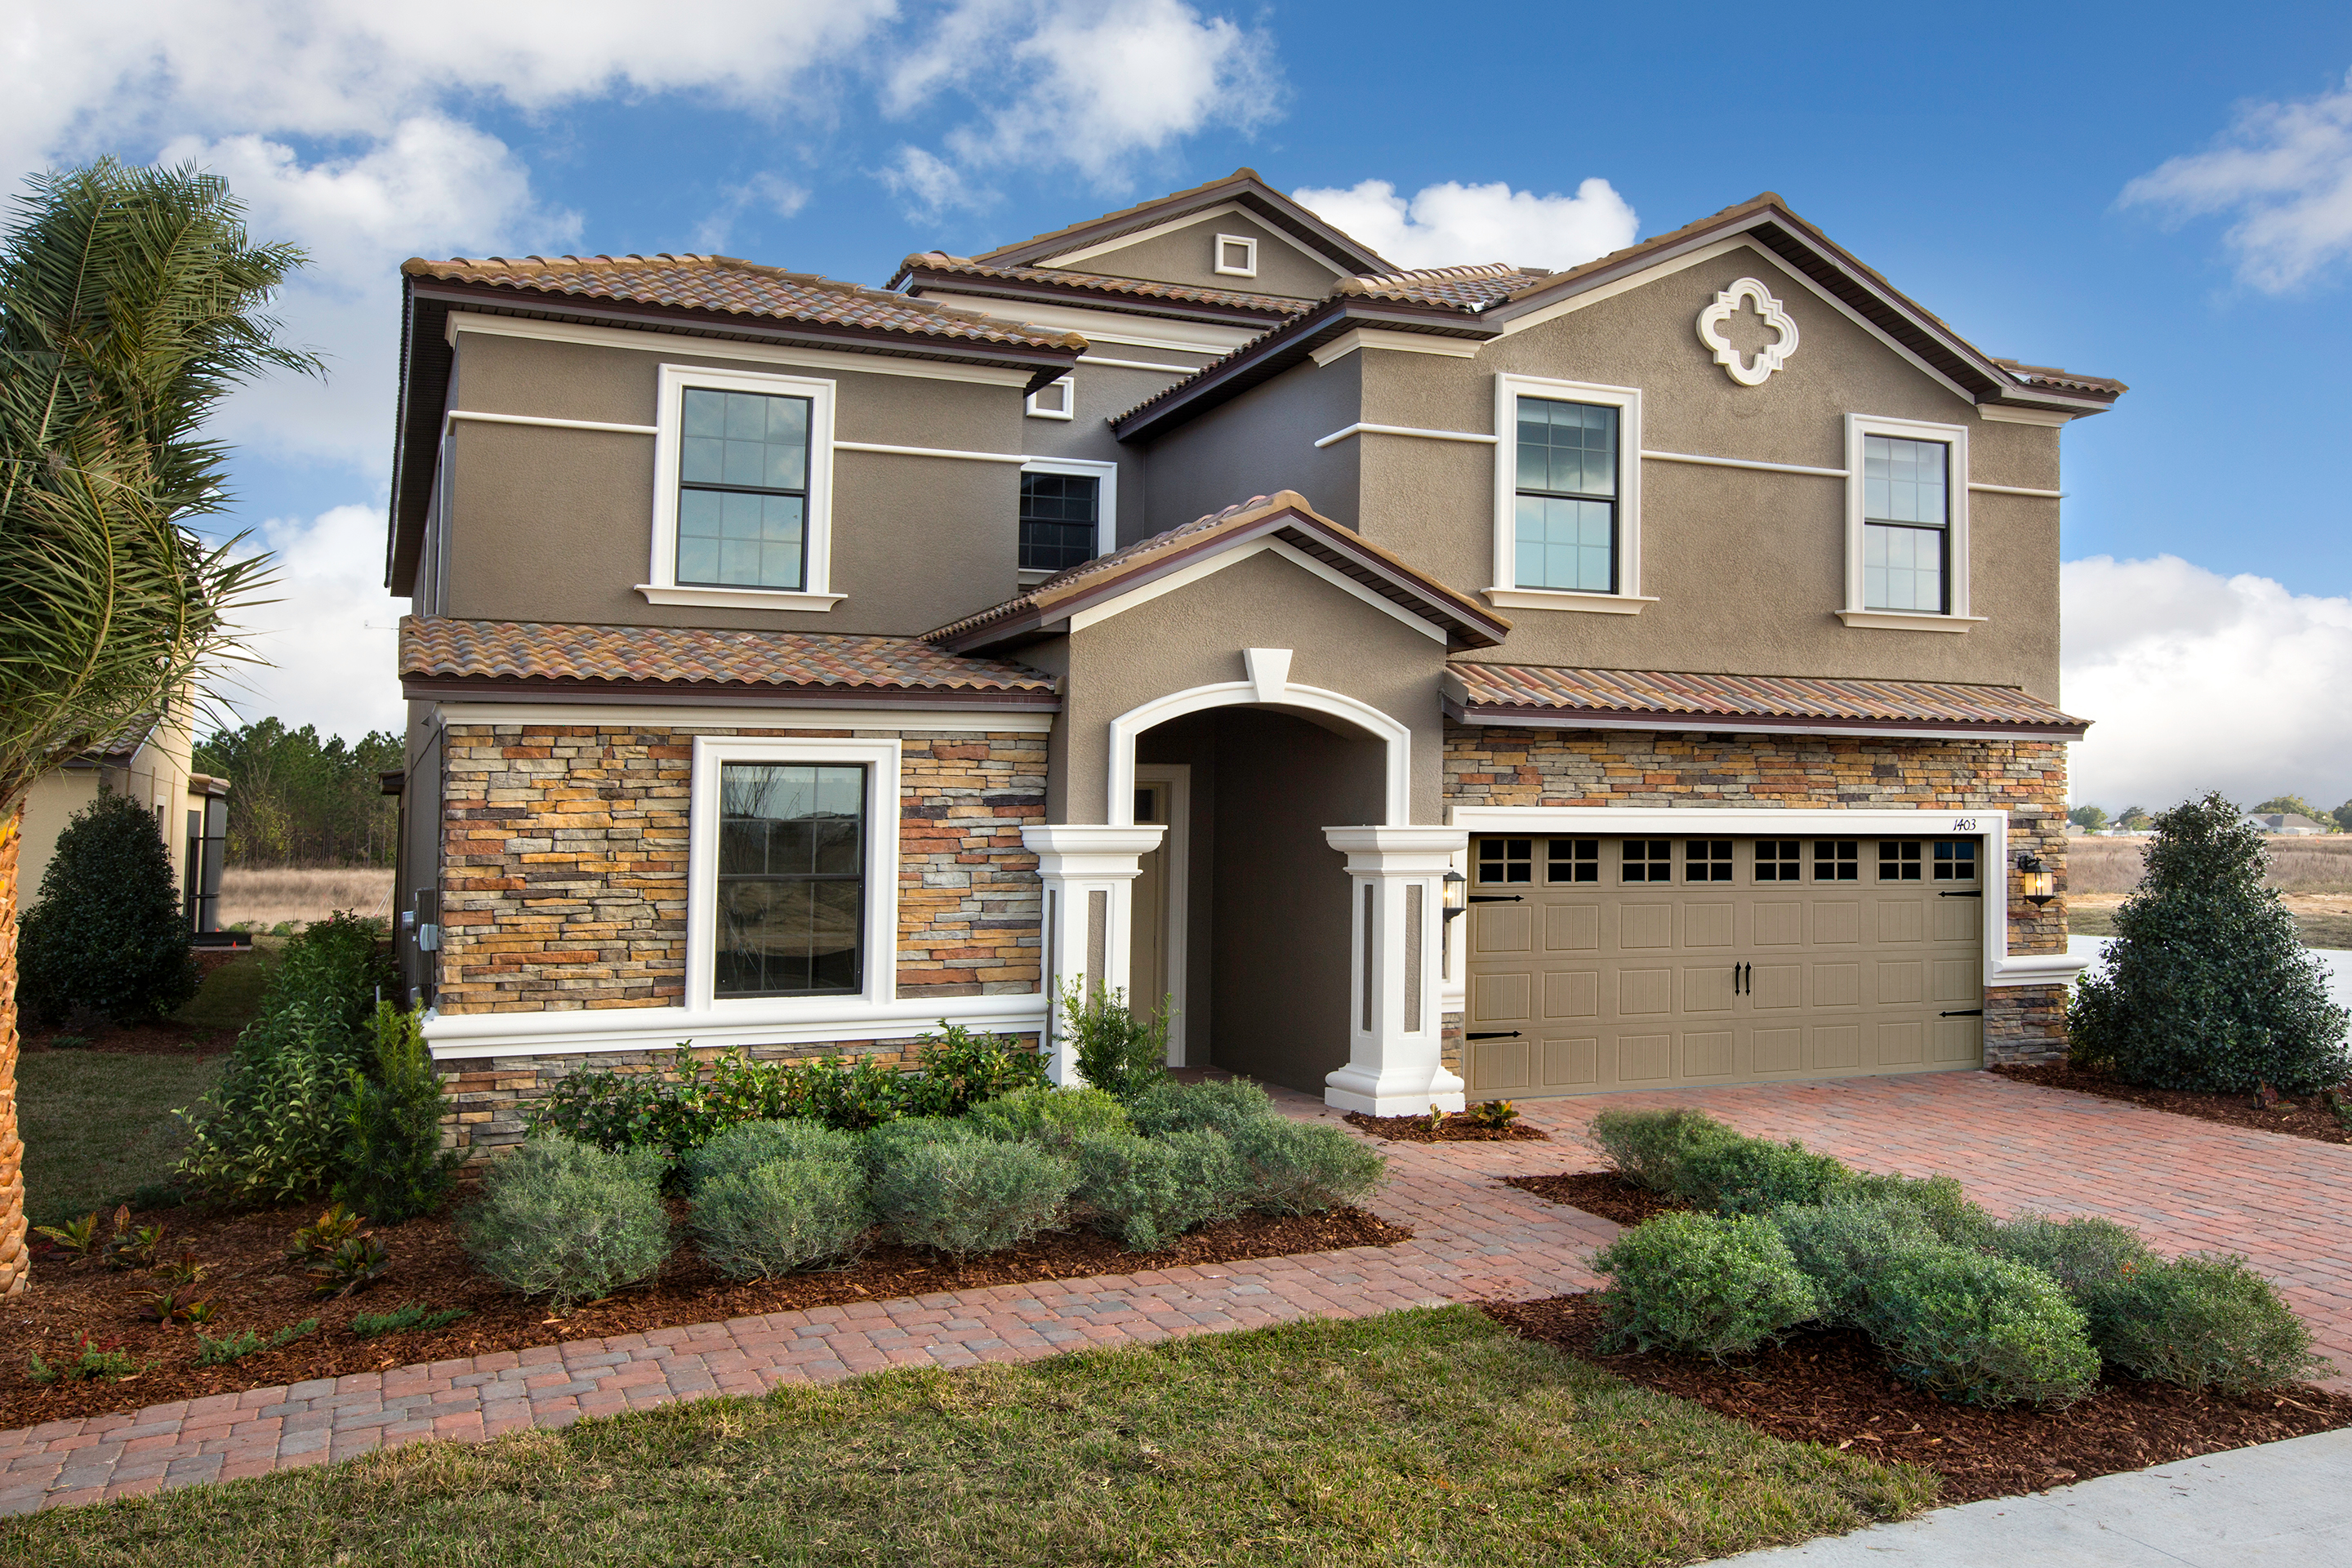 Florida homes association kissimmee fl 34741 for Florida house builders